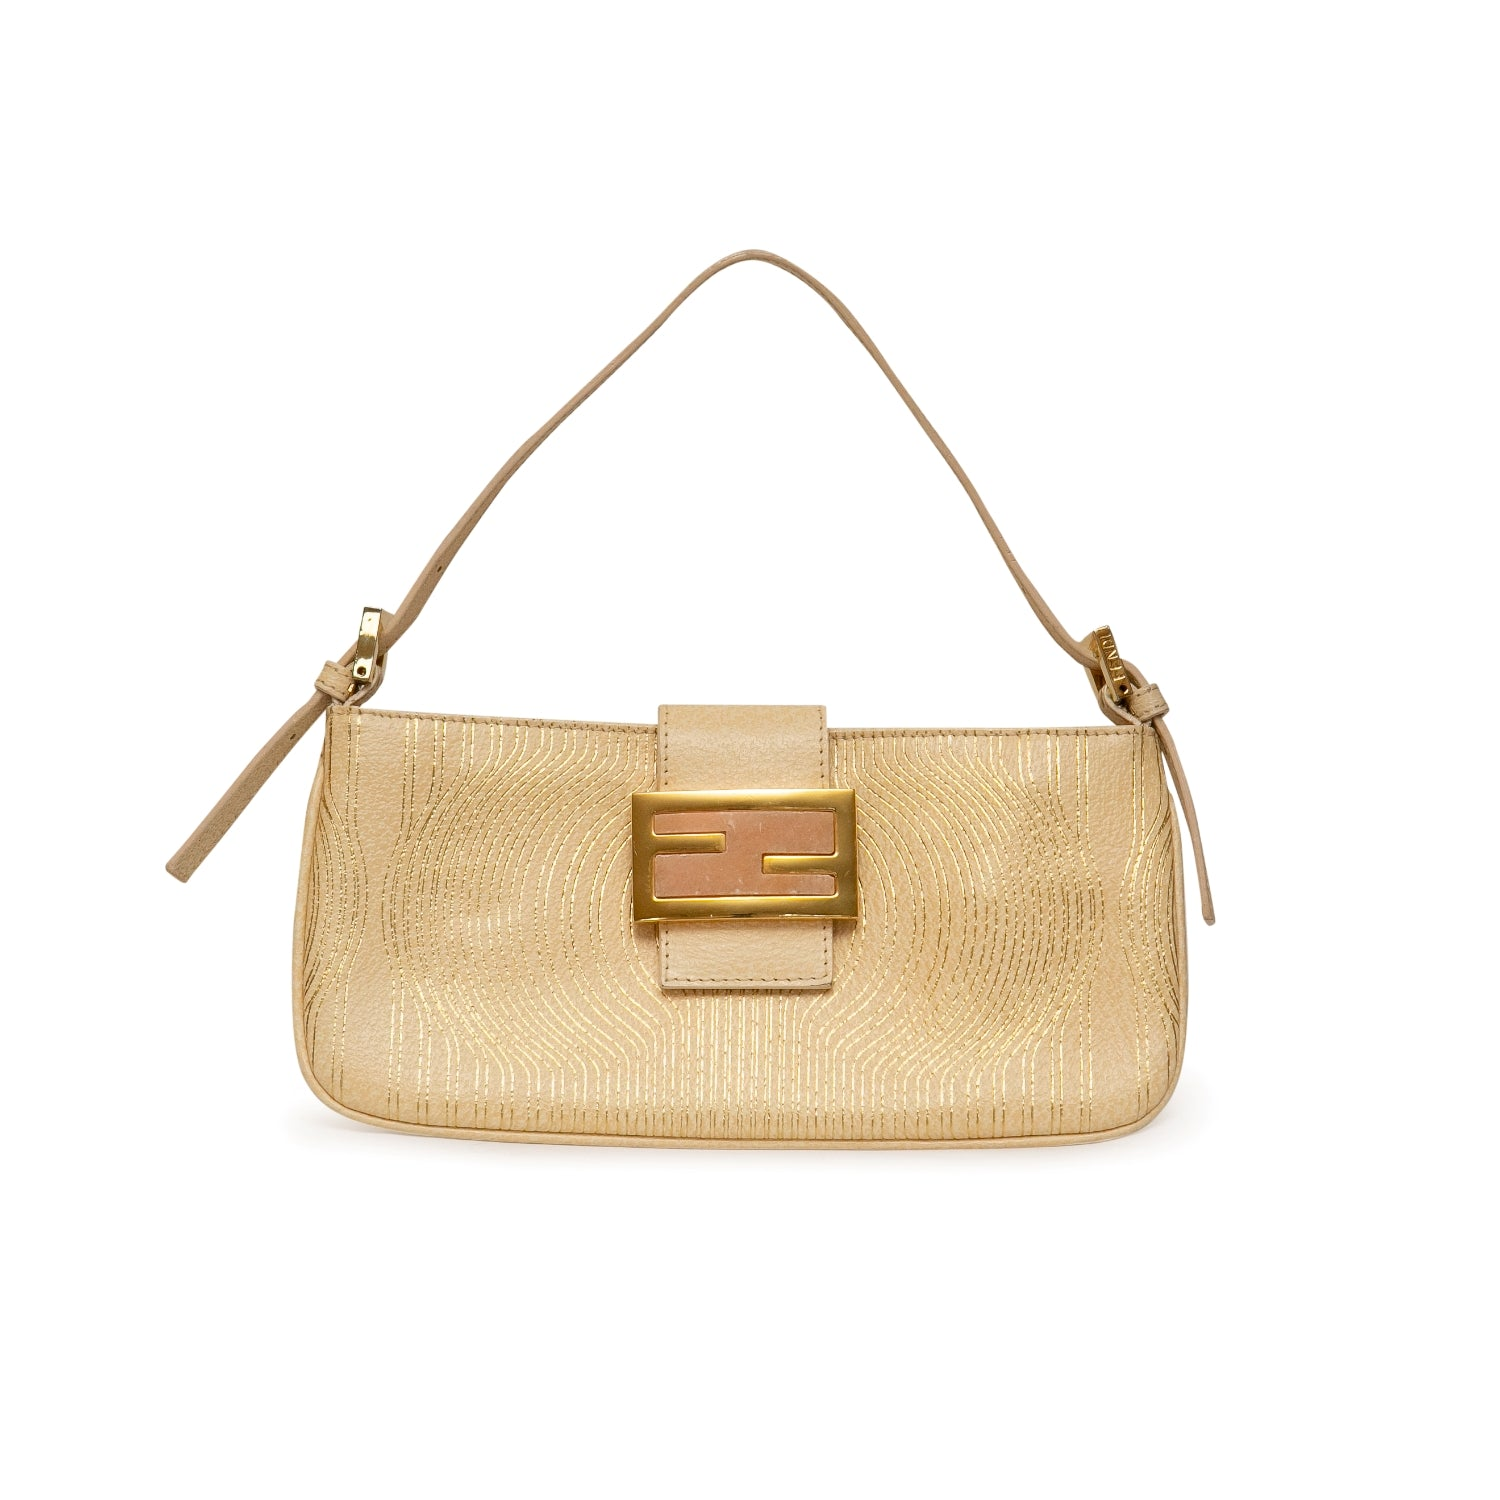 Fendi Leather Mini Baguette